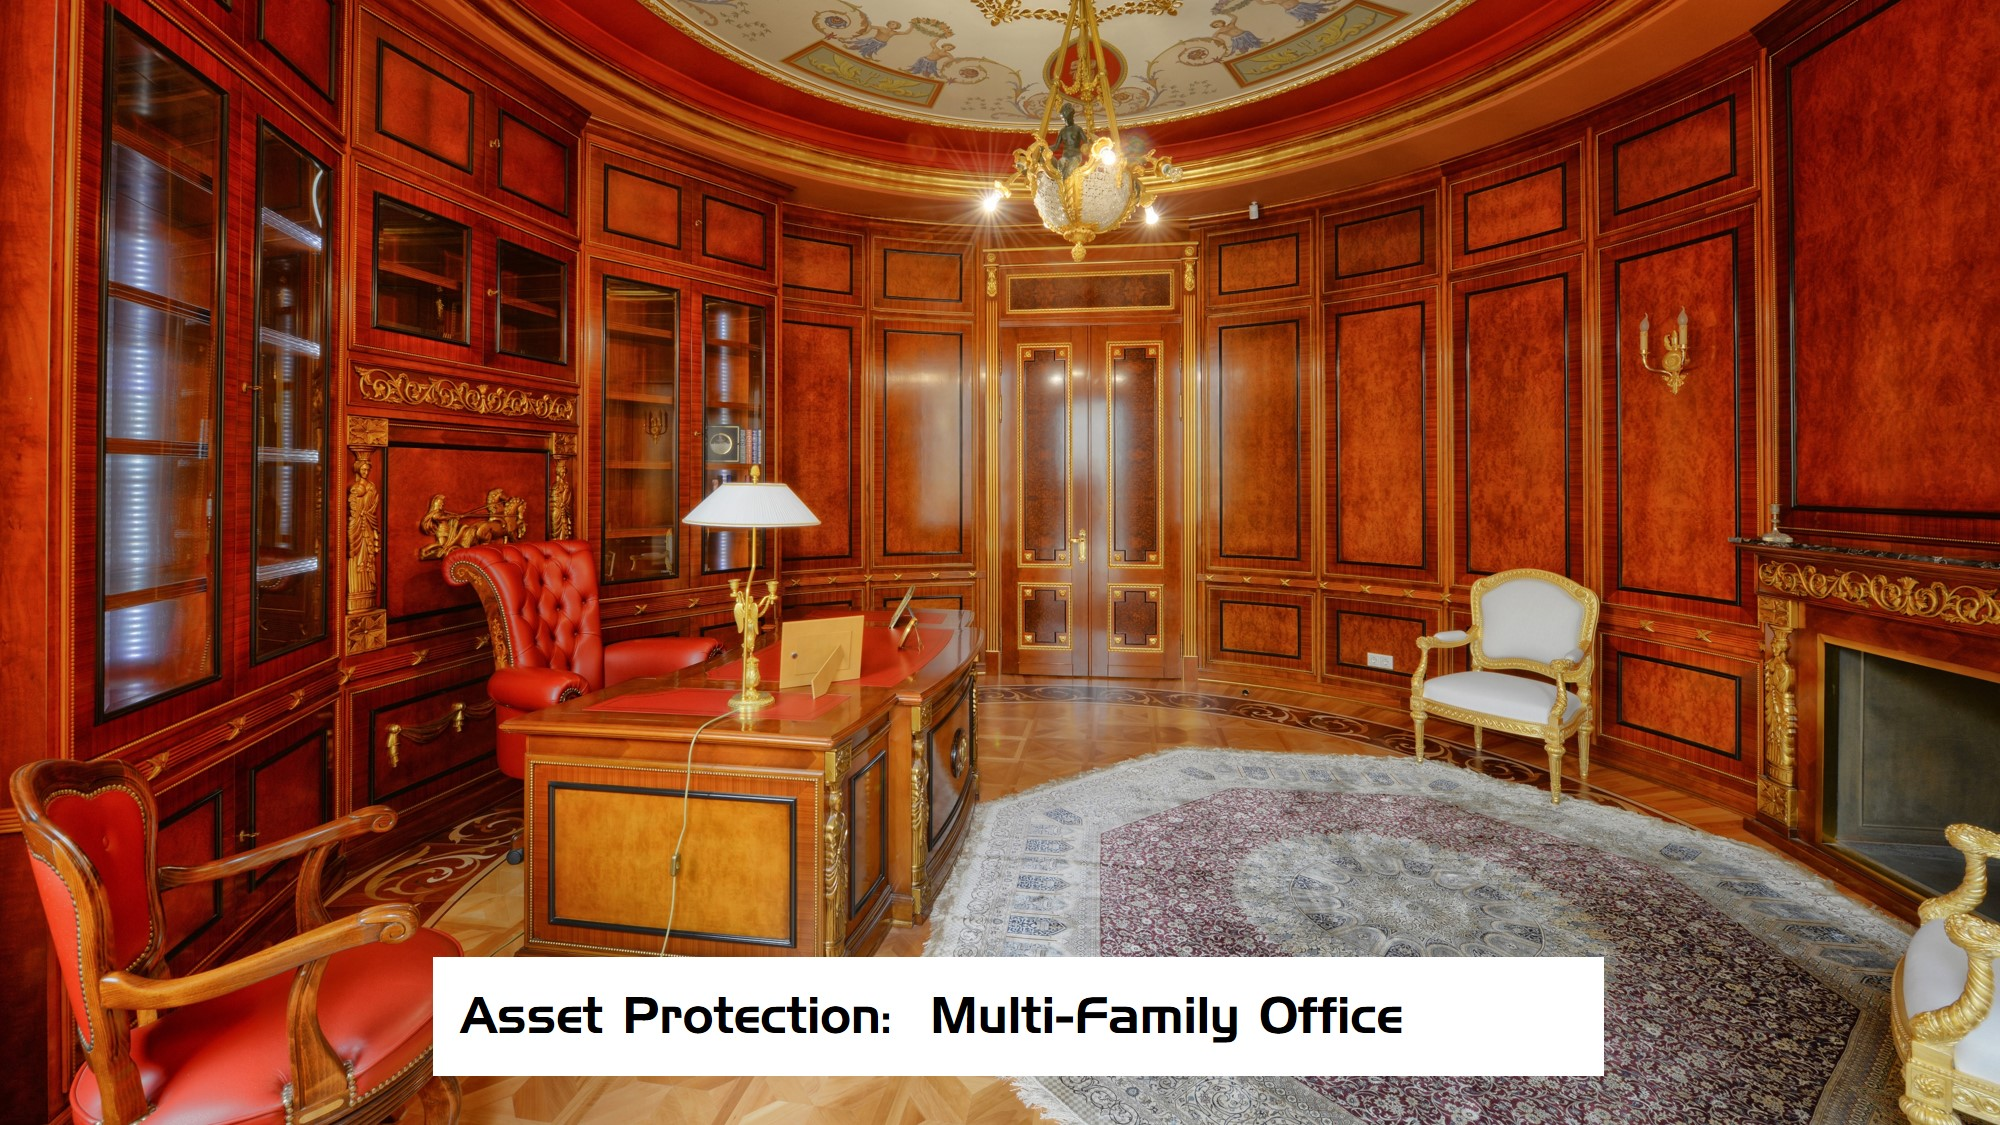 Asset Protection Multi-Family Office